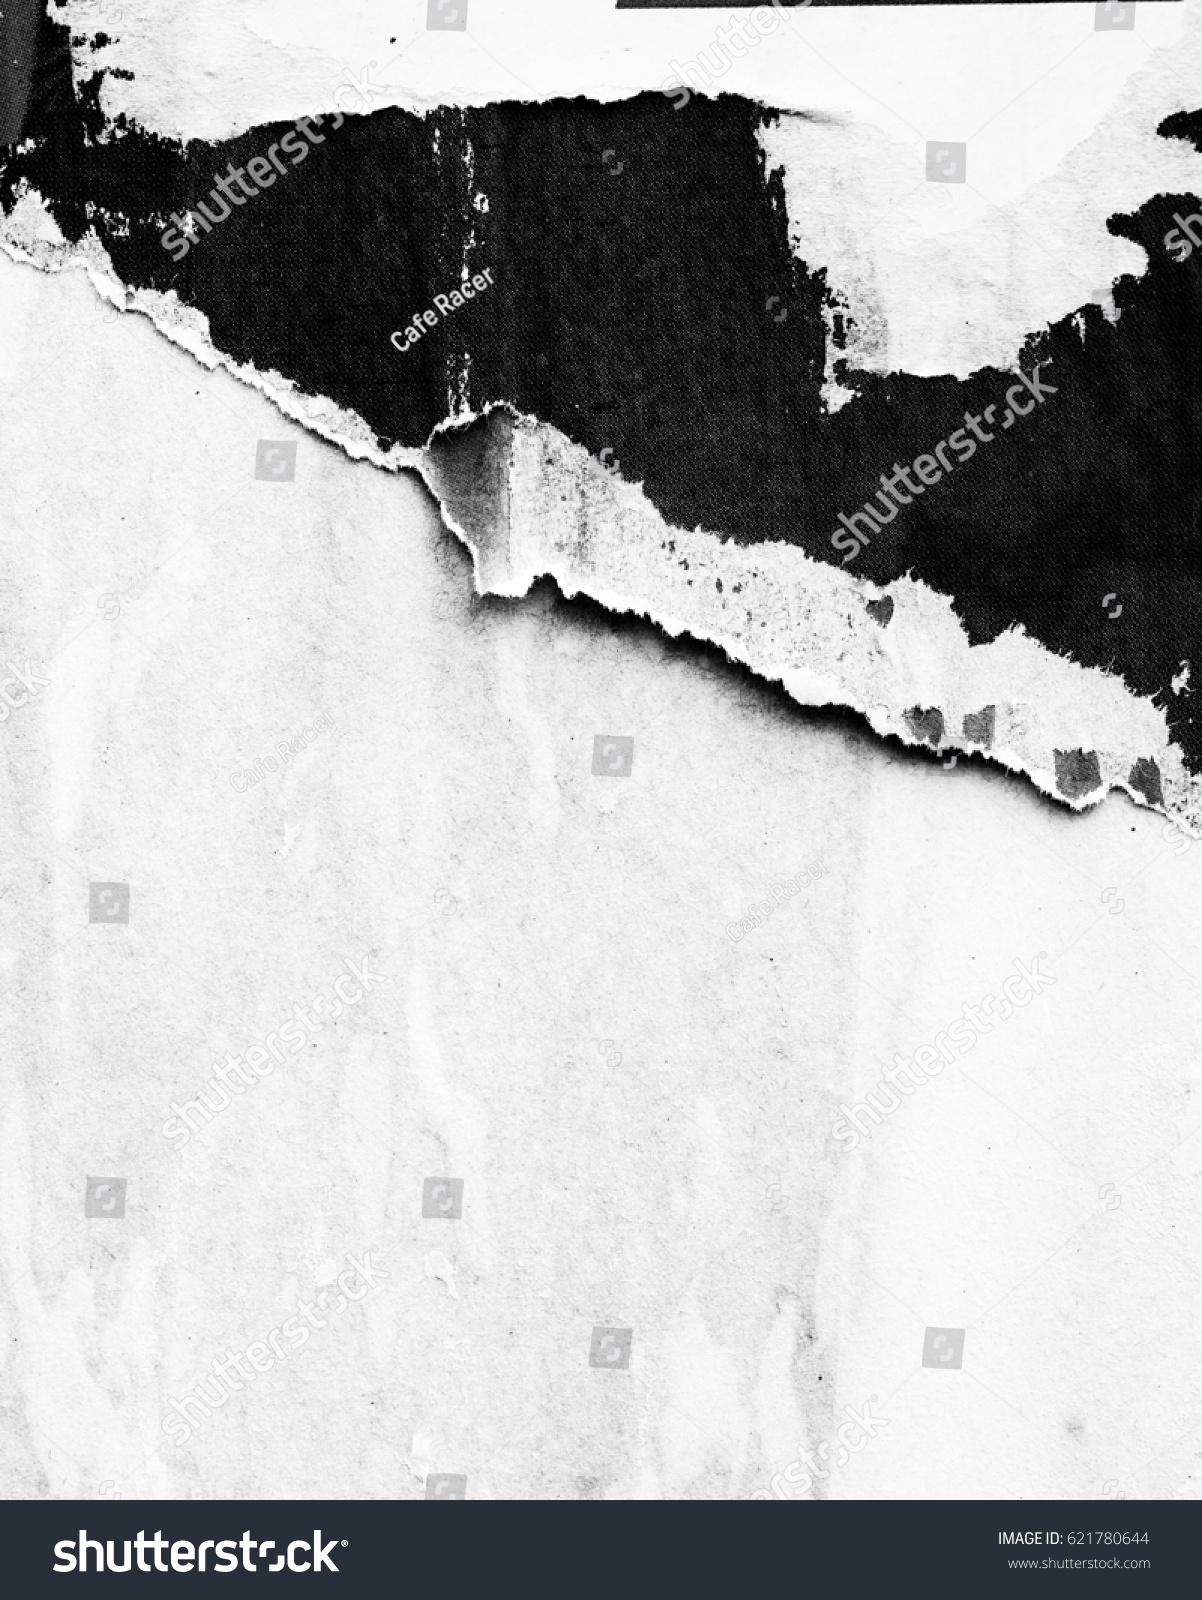 Black white old grunge ripped torn vintage collage posters creased crumpled paper surface texture background placard / Empty space for text #621780644